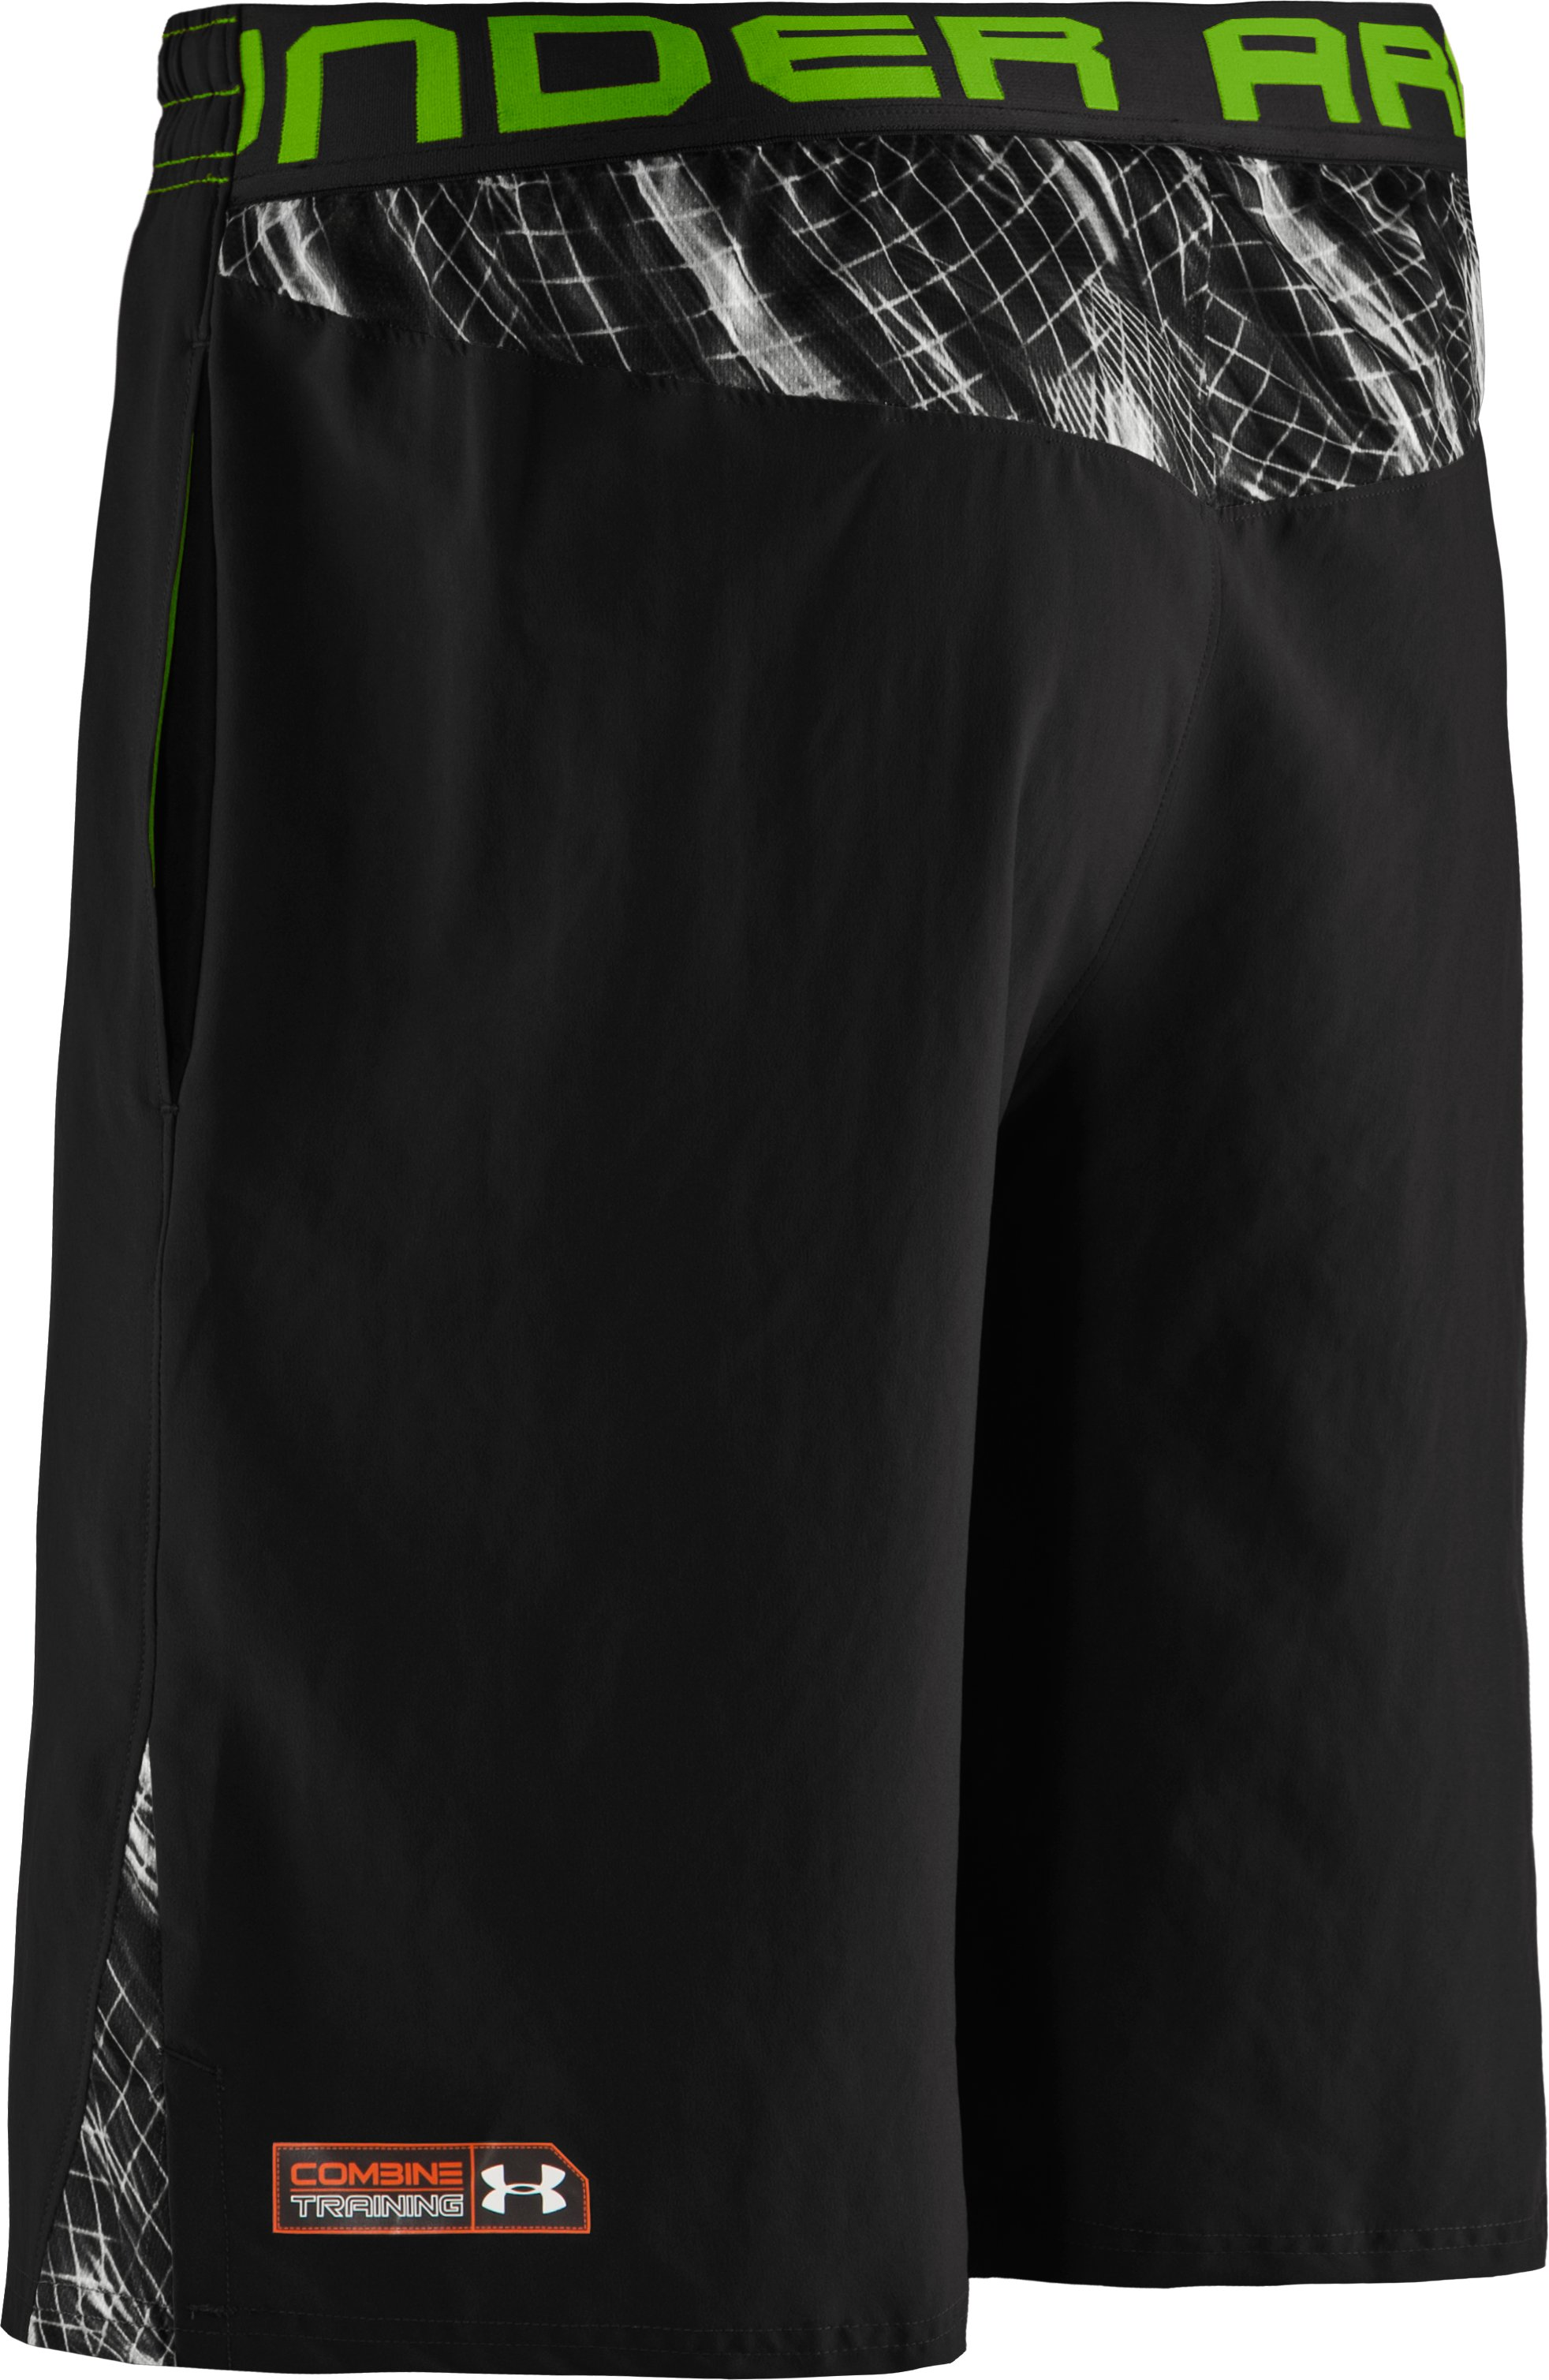 "Men's UA Combine® Training Plus 10"" Shorts, Black"